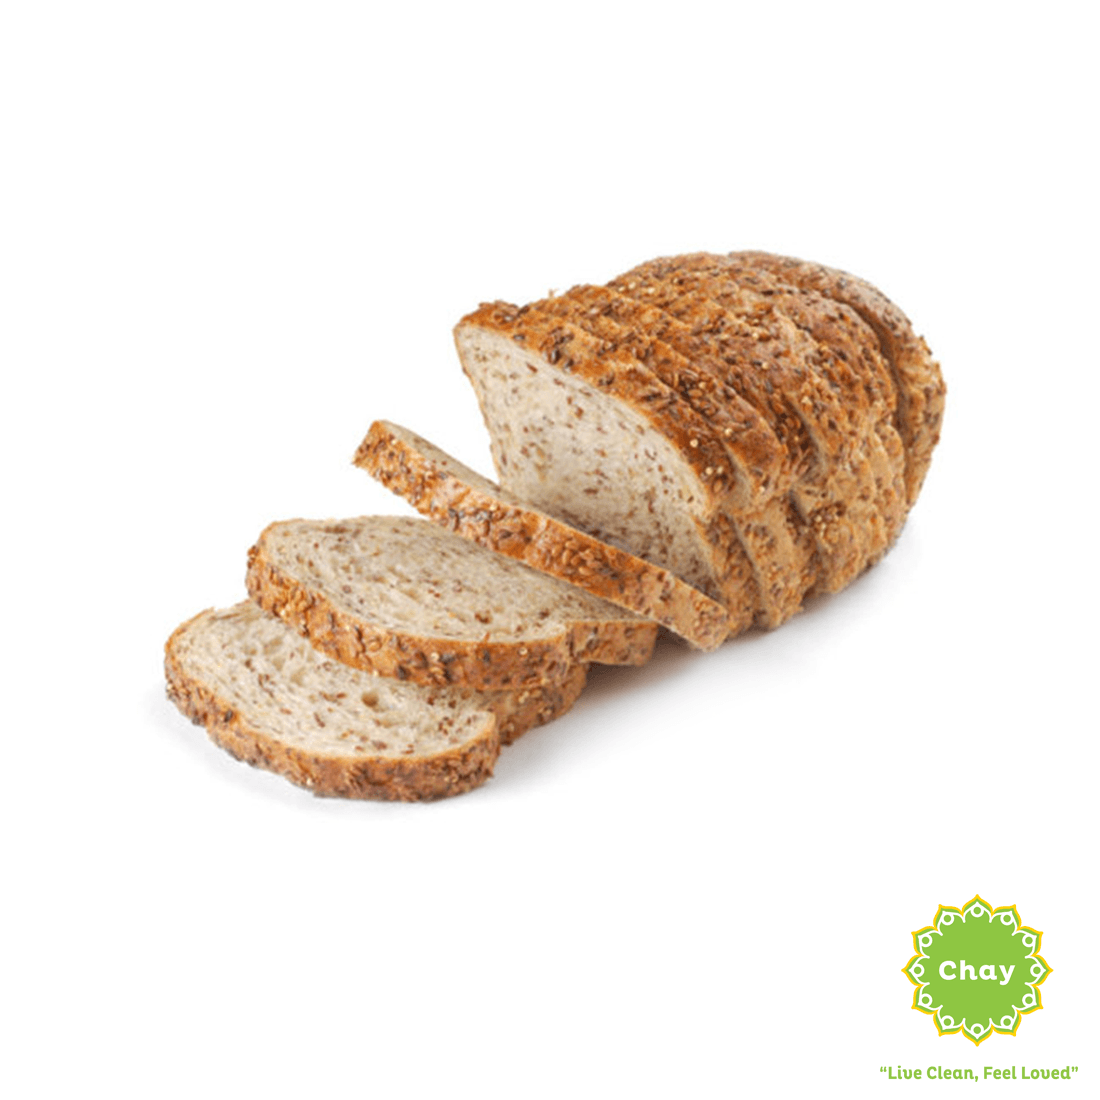 [BK004] Organic Alpine Seeded Bread 600g (V) en Harvest Baking Sliced